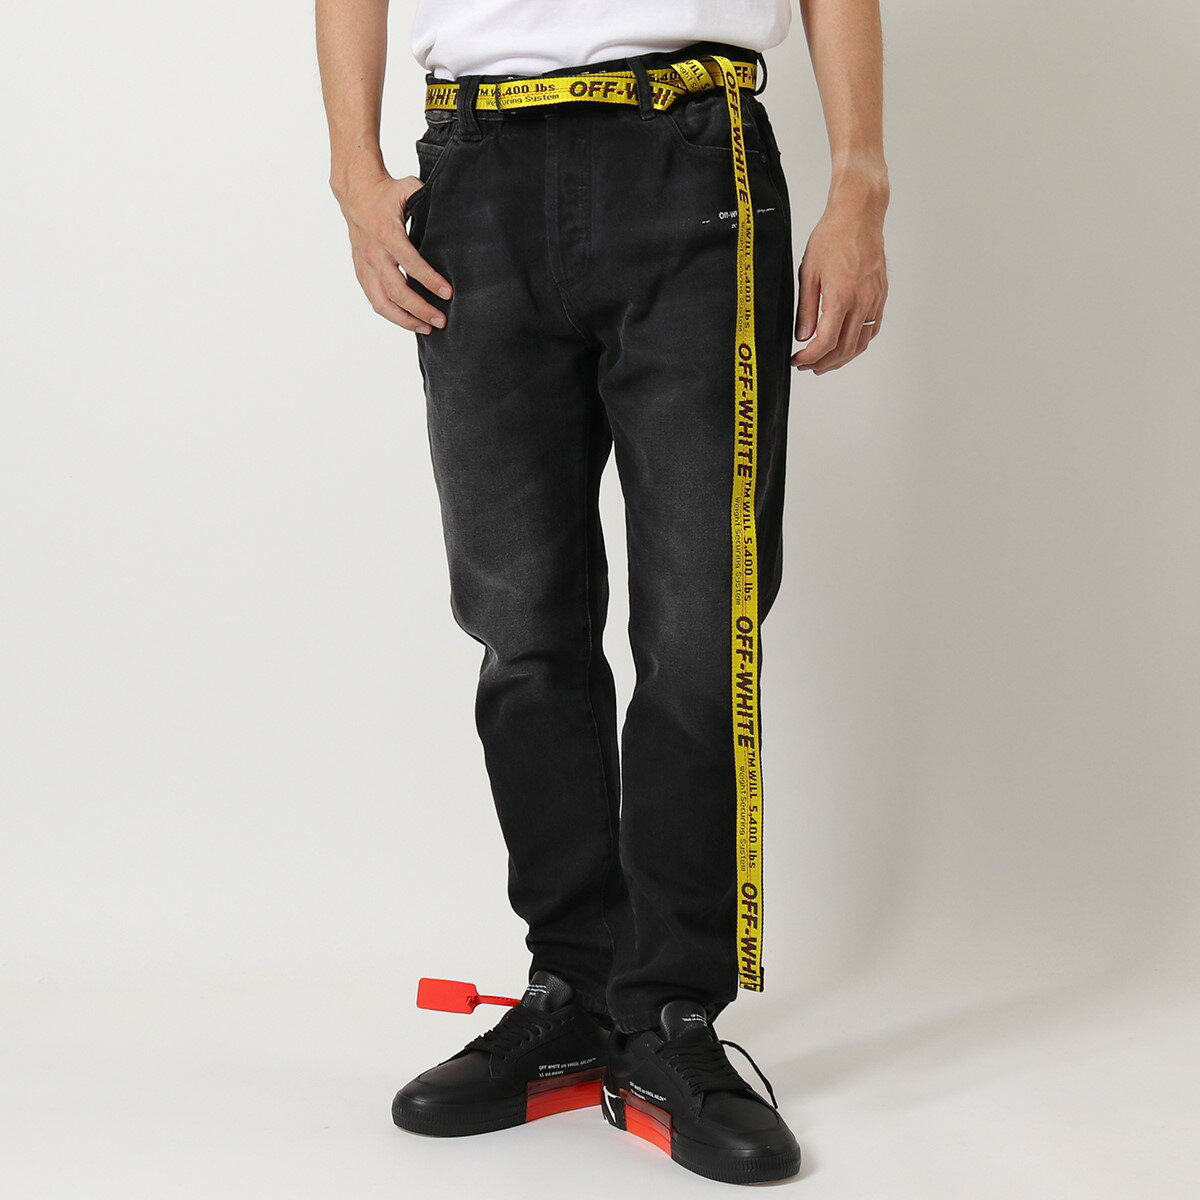 ベルト・サスペンダー, メンズベルト OFF-WHITE VIRGIL ABLOH OMRB021E20FAB0021810 CARRY OV MINI INDUSTRIAL BELT 2.5